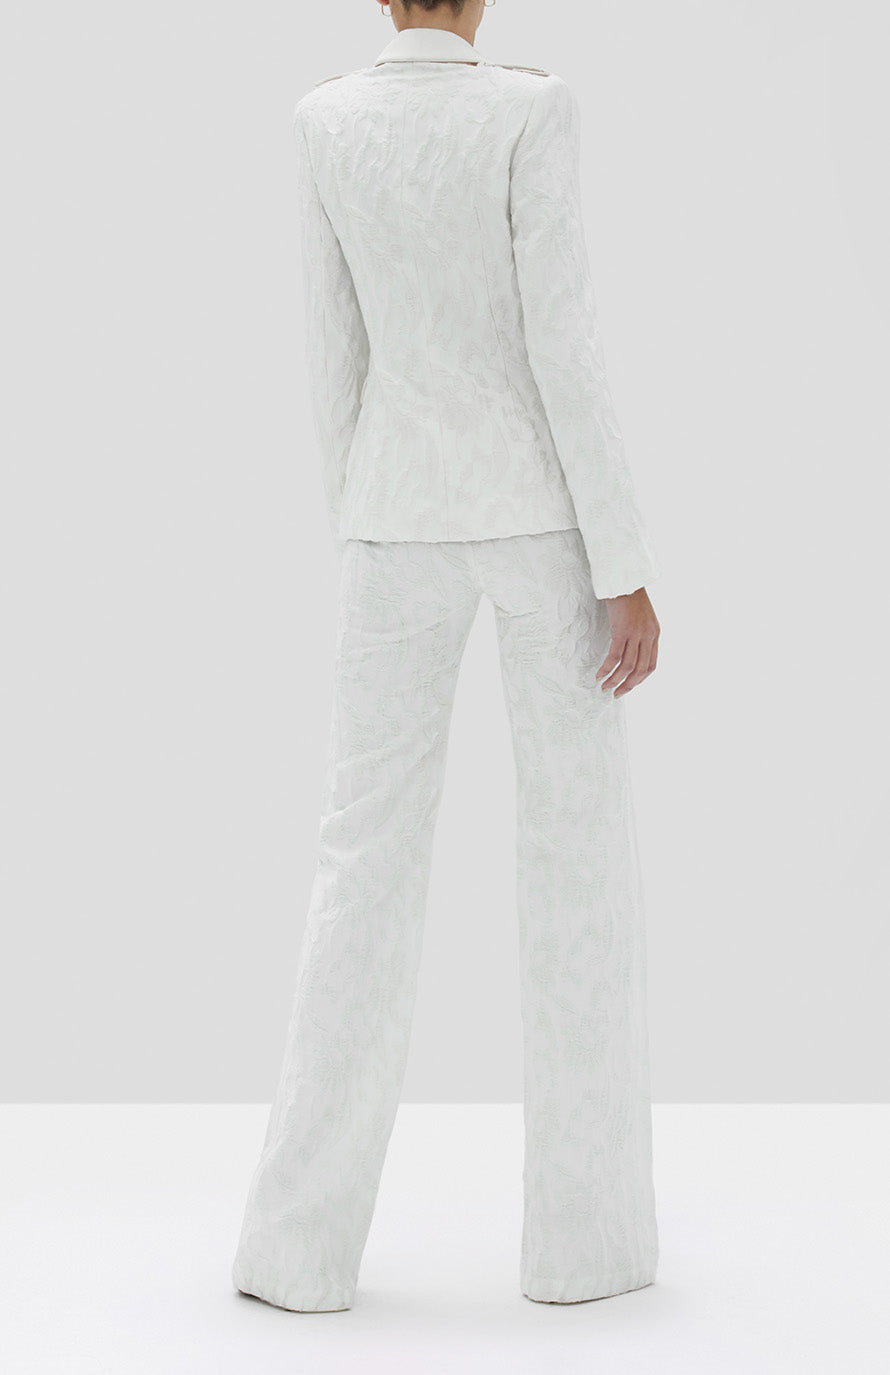 Alexis Claudya Jacket and Bouras Pant in White Floral Jacquard - Rear View